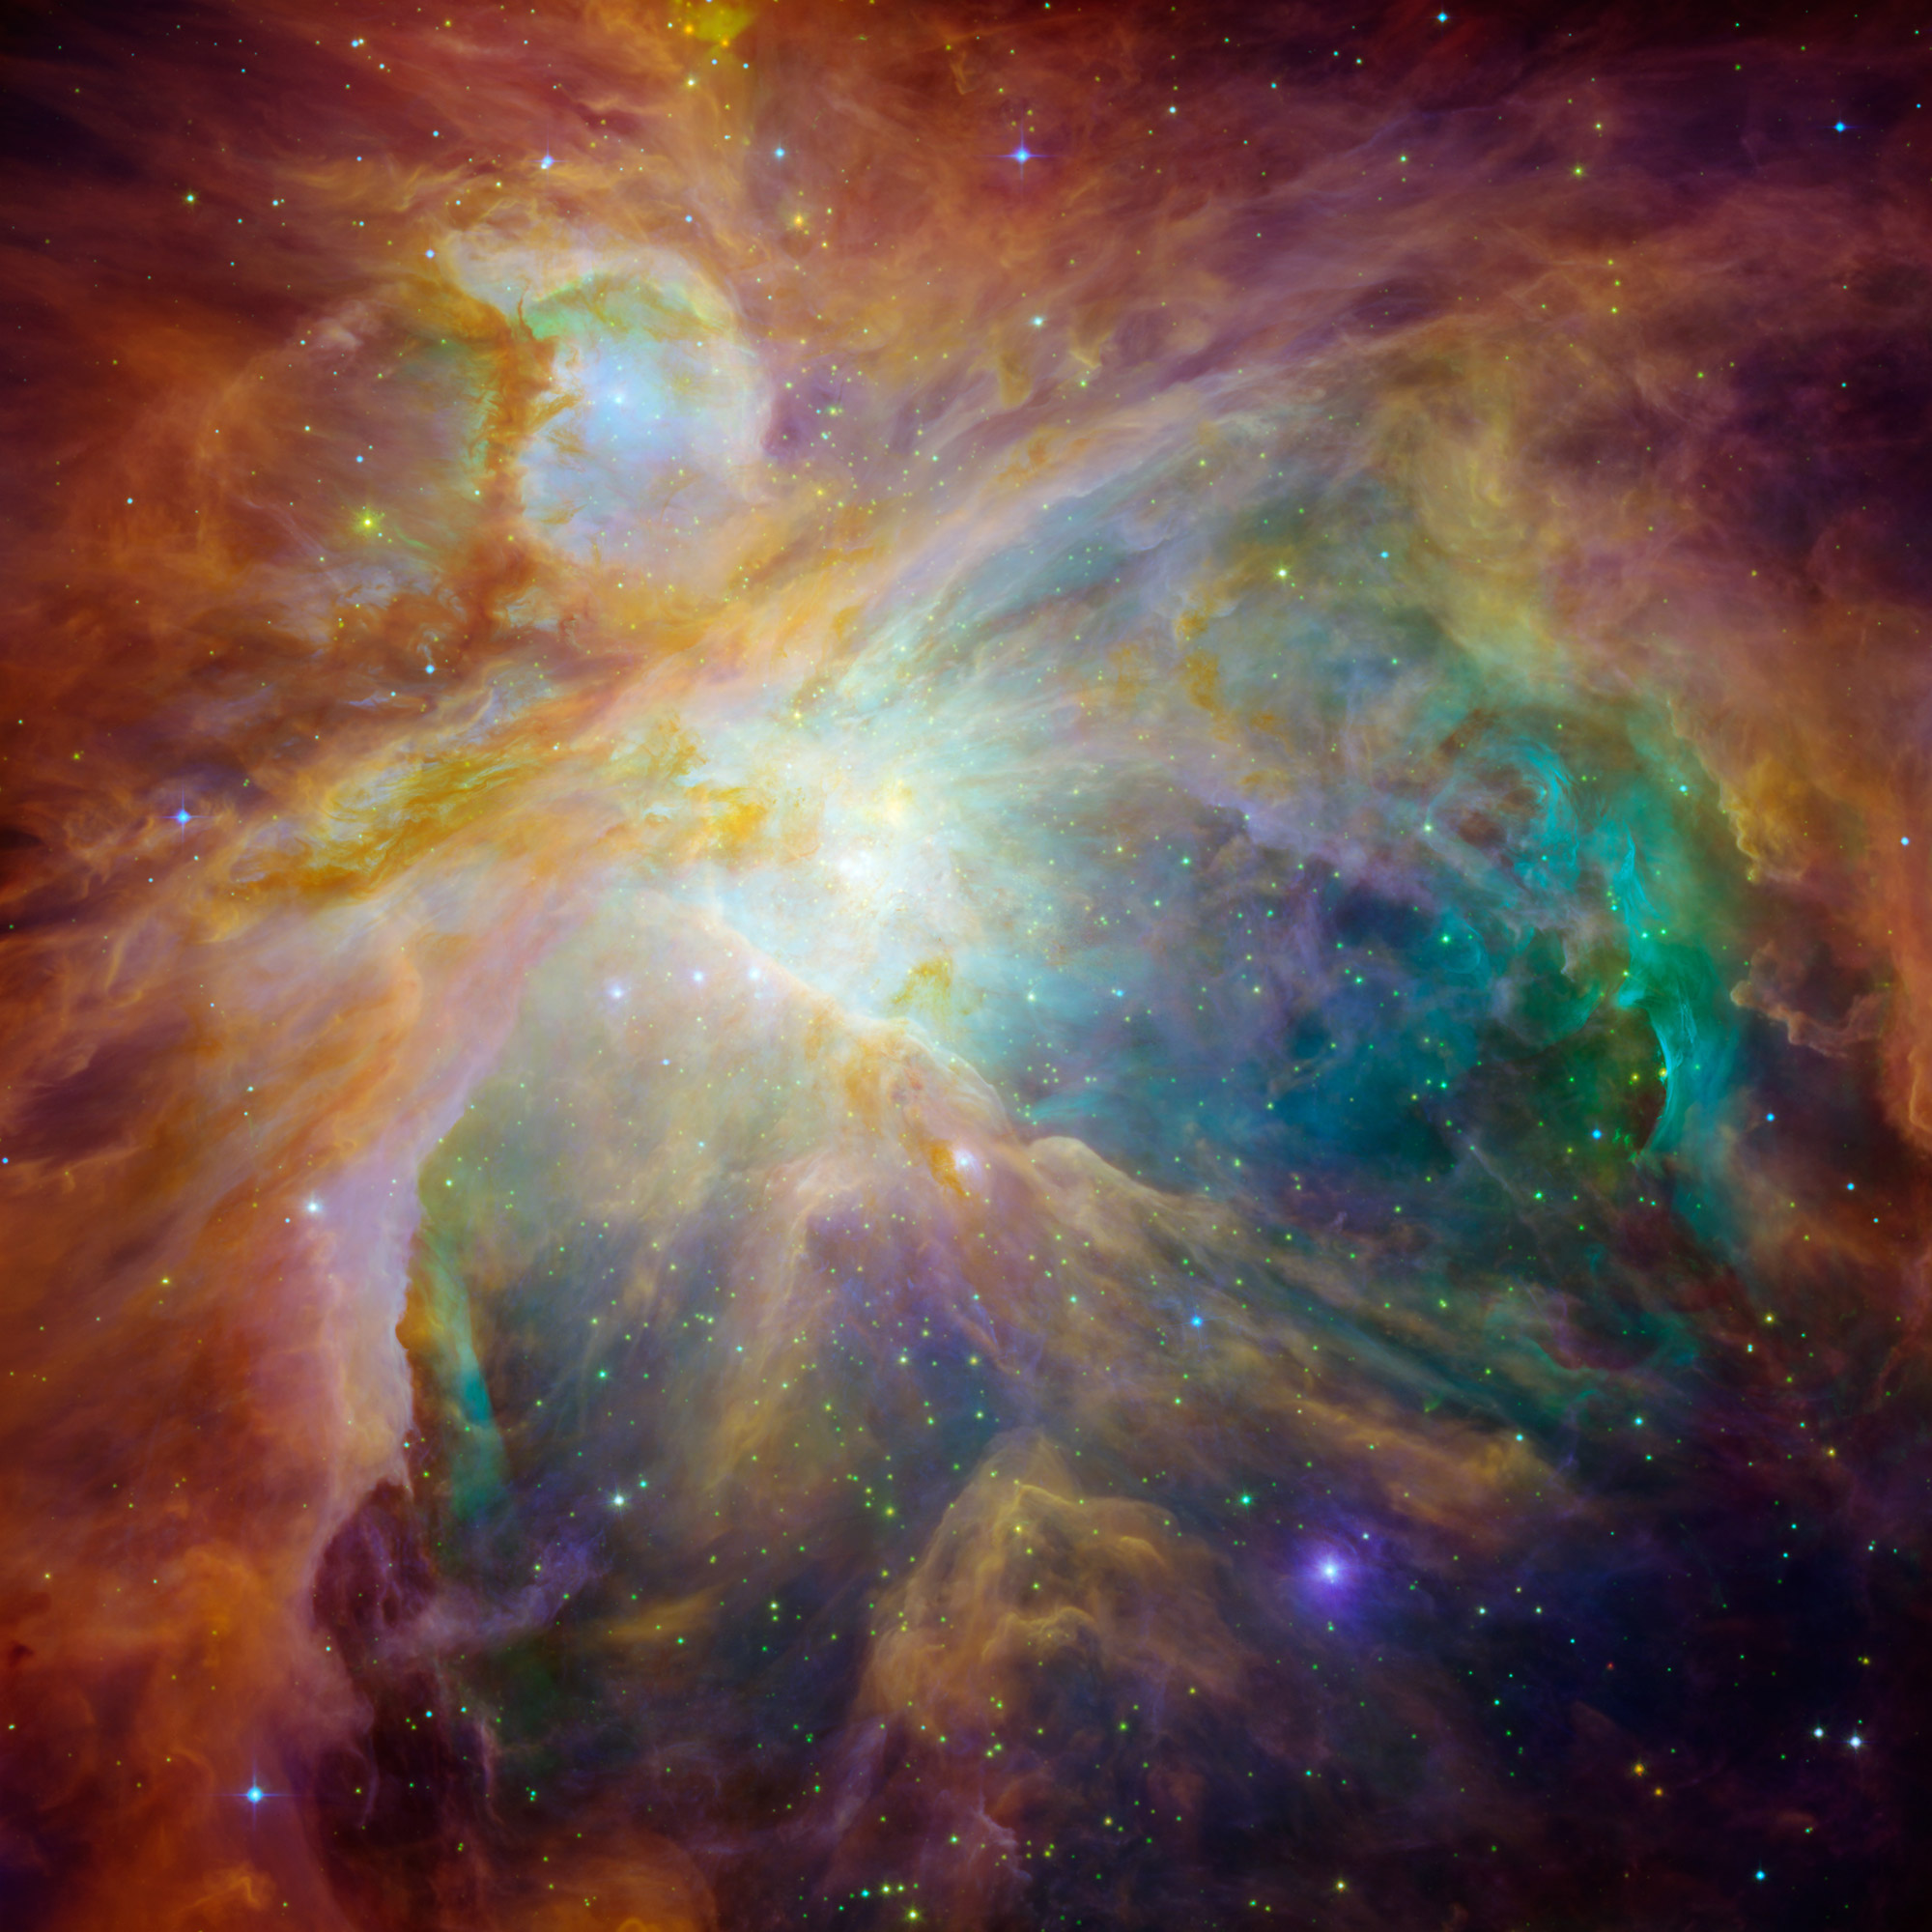 hubble telescope images of space - photo #15